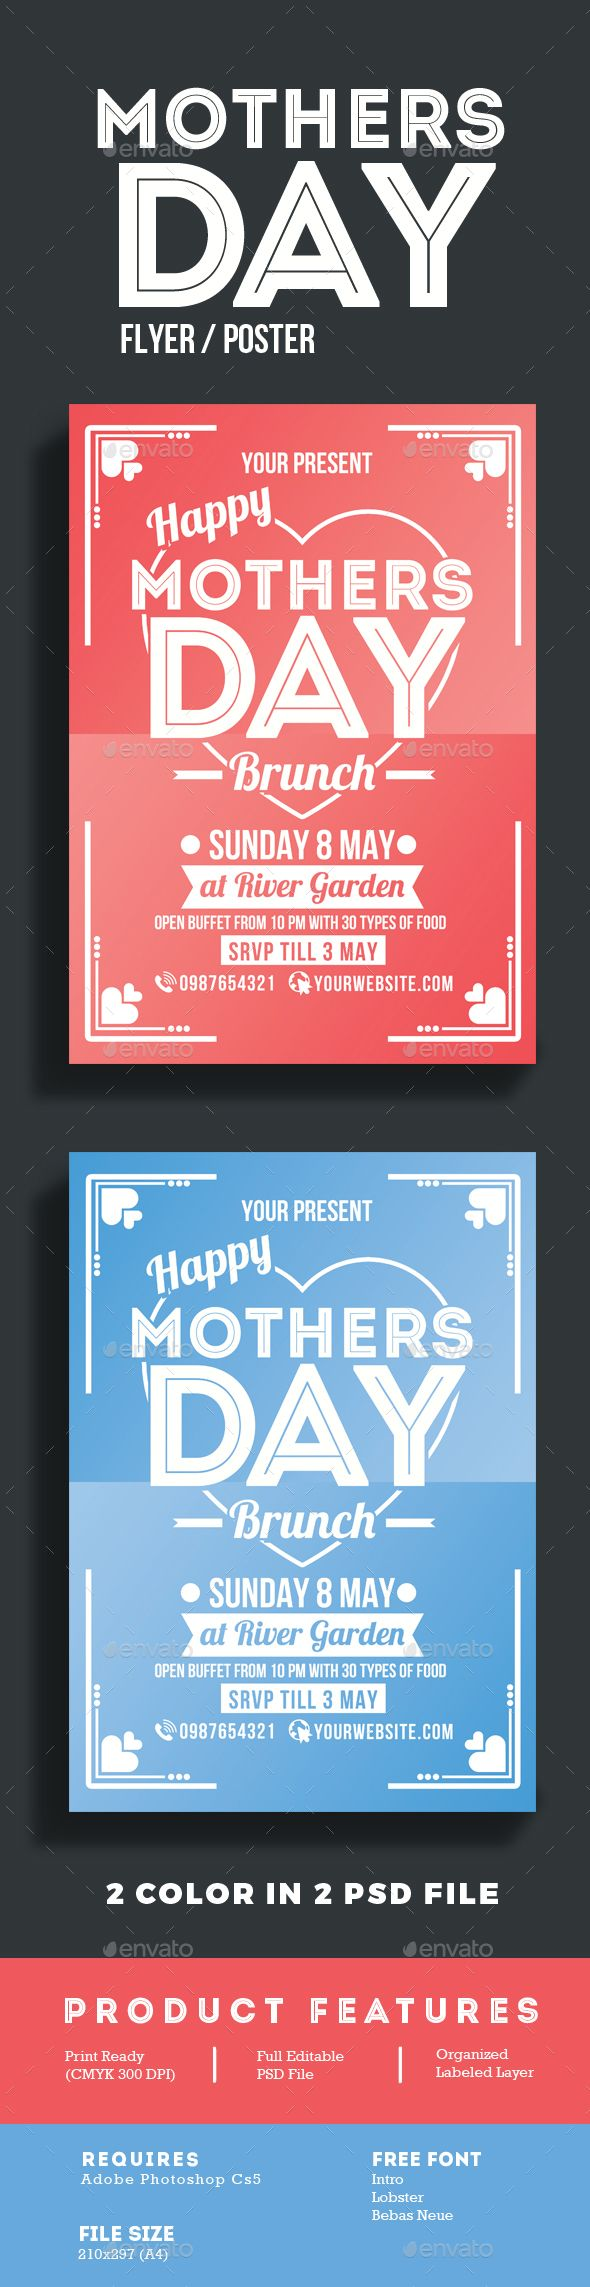 Mothers Day Brunch Flyer Poster Template PSD. Download here: http://graphicriver.net/item/mothers-day-brunch-flyer-poster/15855225?ref=ksioks